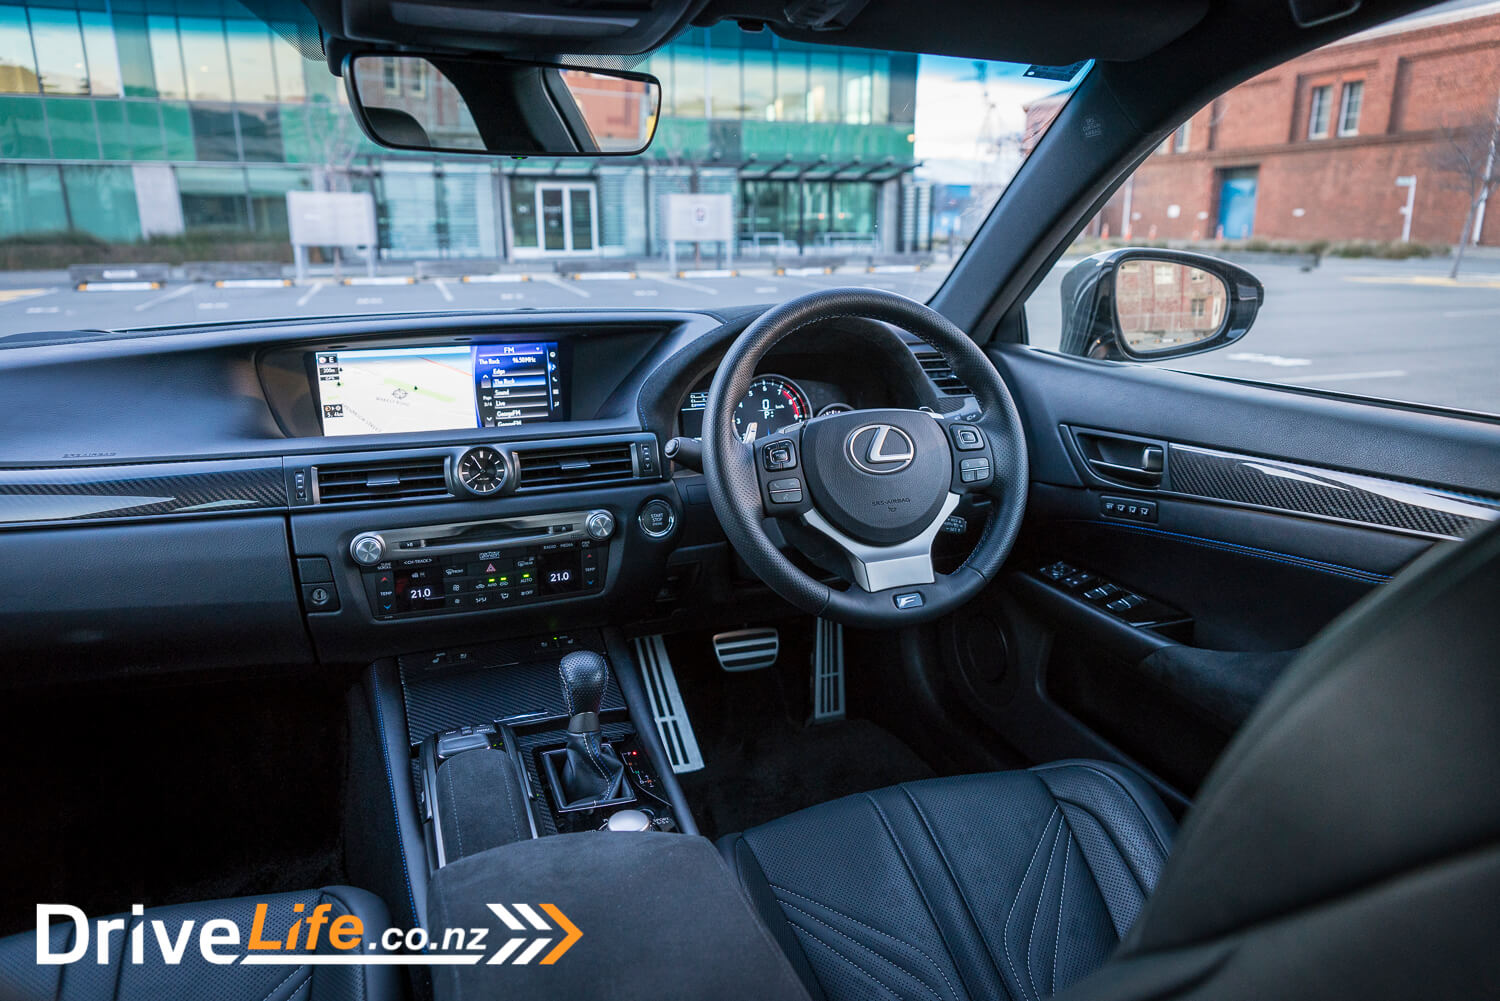 DriveLife-Car-Review-2016-Lexus-GS-F-24